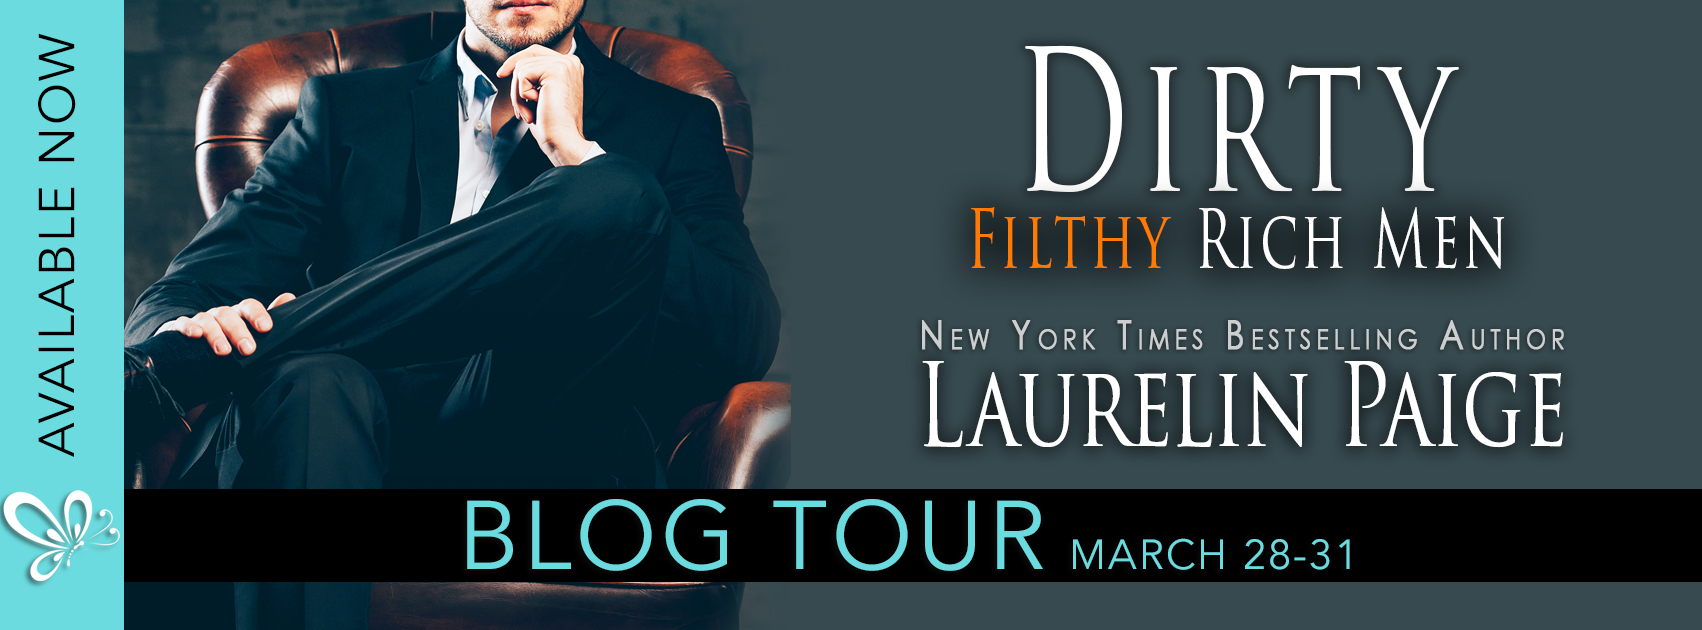 Blog Tour Review:  Dirty Filthy Rich Men by Laurelin Paige